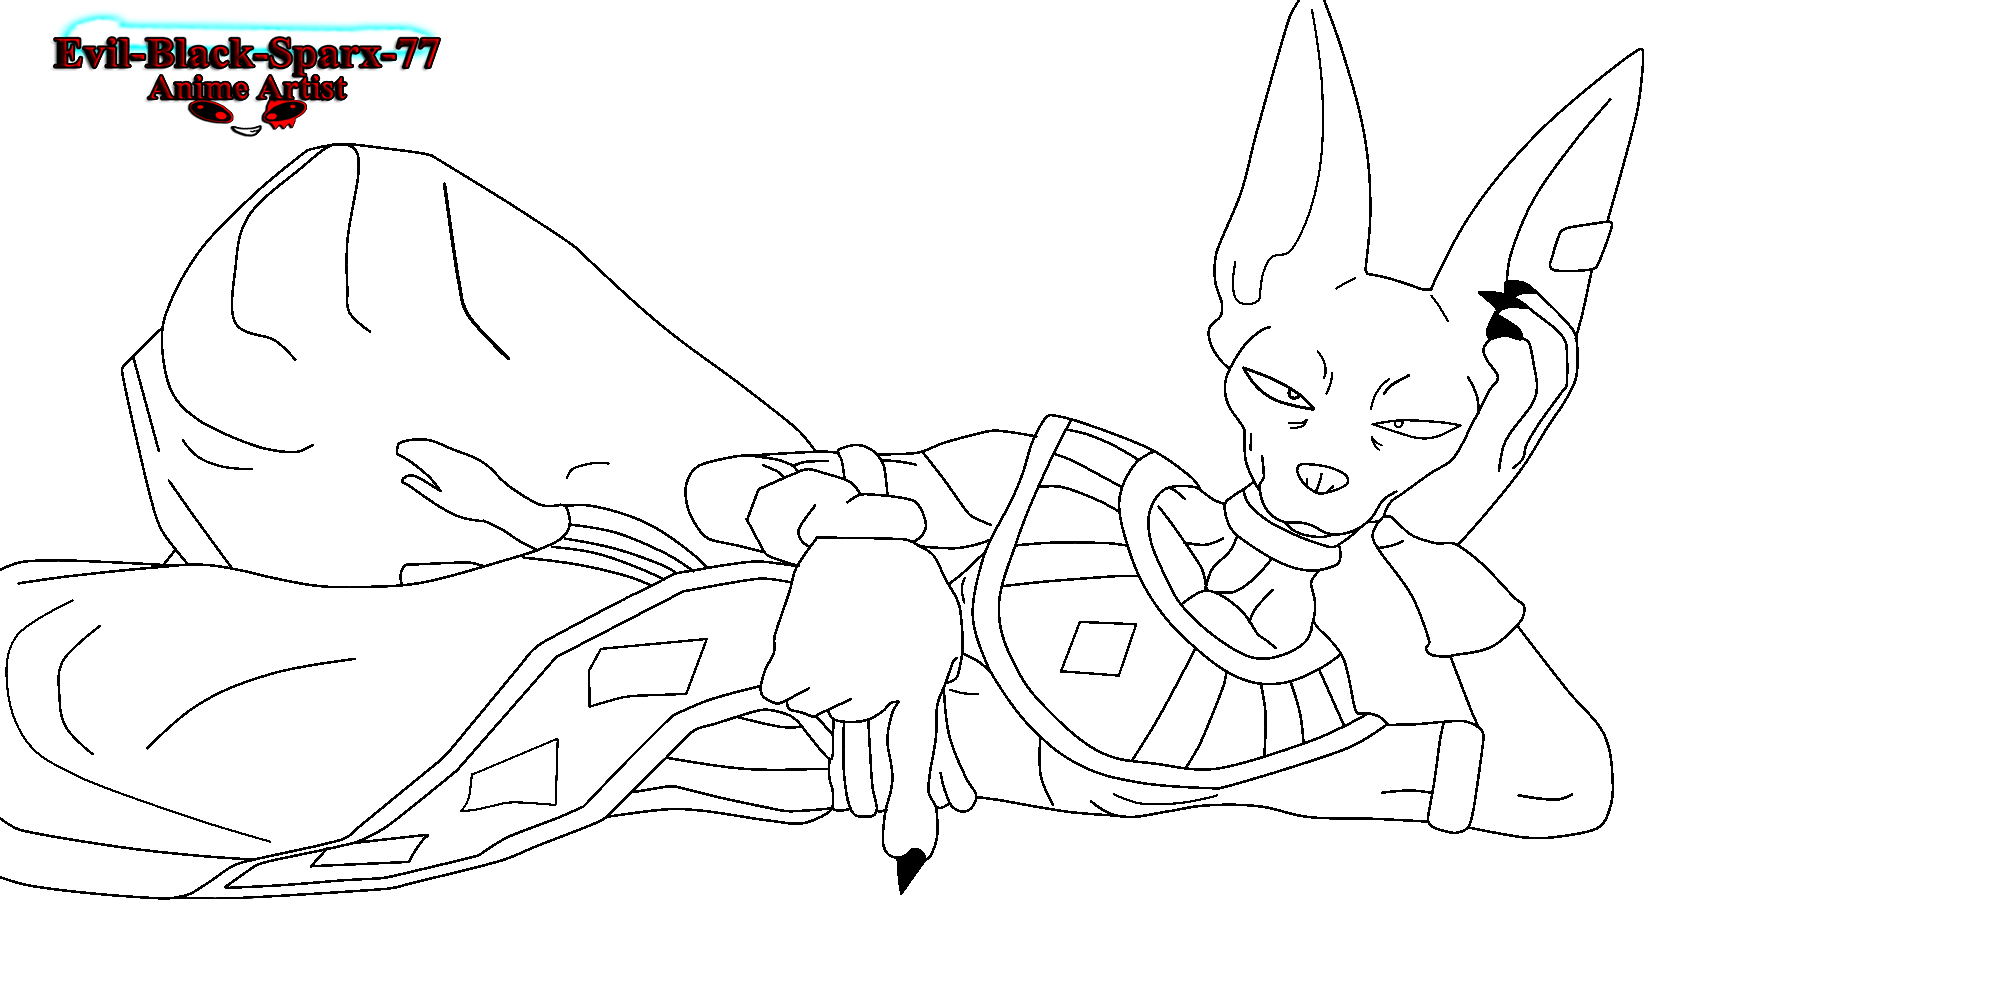 dragon ball z beerus coloring pages lord beerus dbz coloring pages coloring pages beerus pages ball dragon coloring z